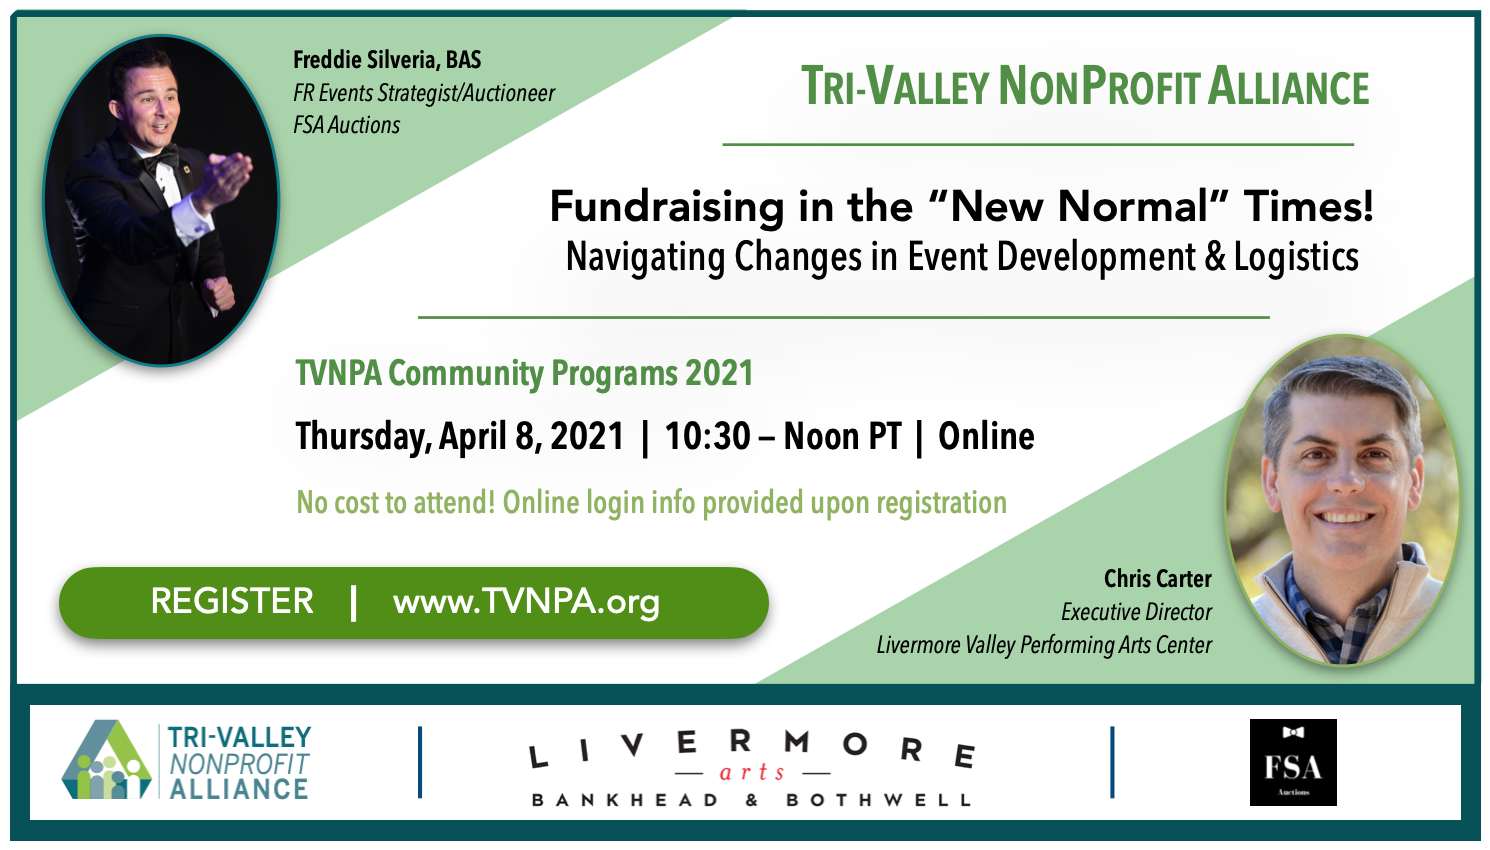 Register for TVNPA Fundraising in the New Normal Times